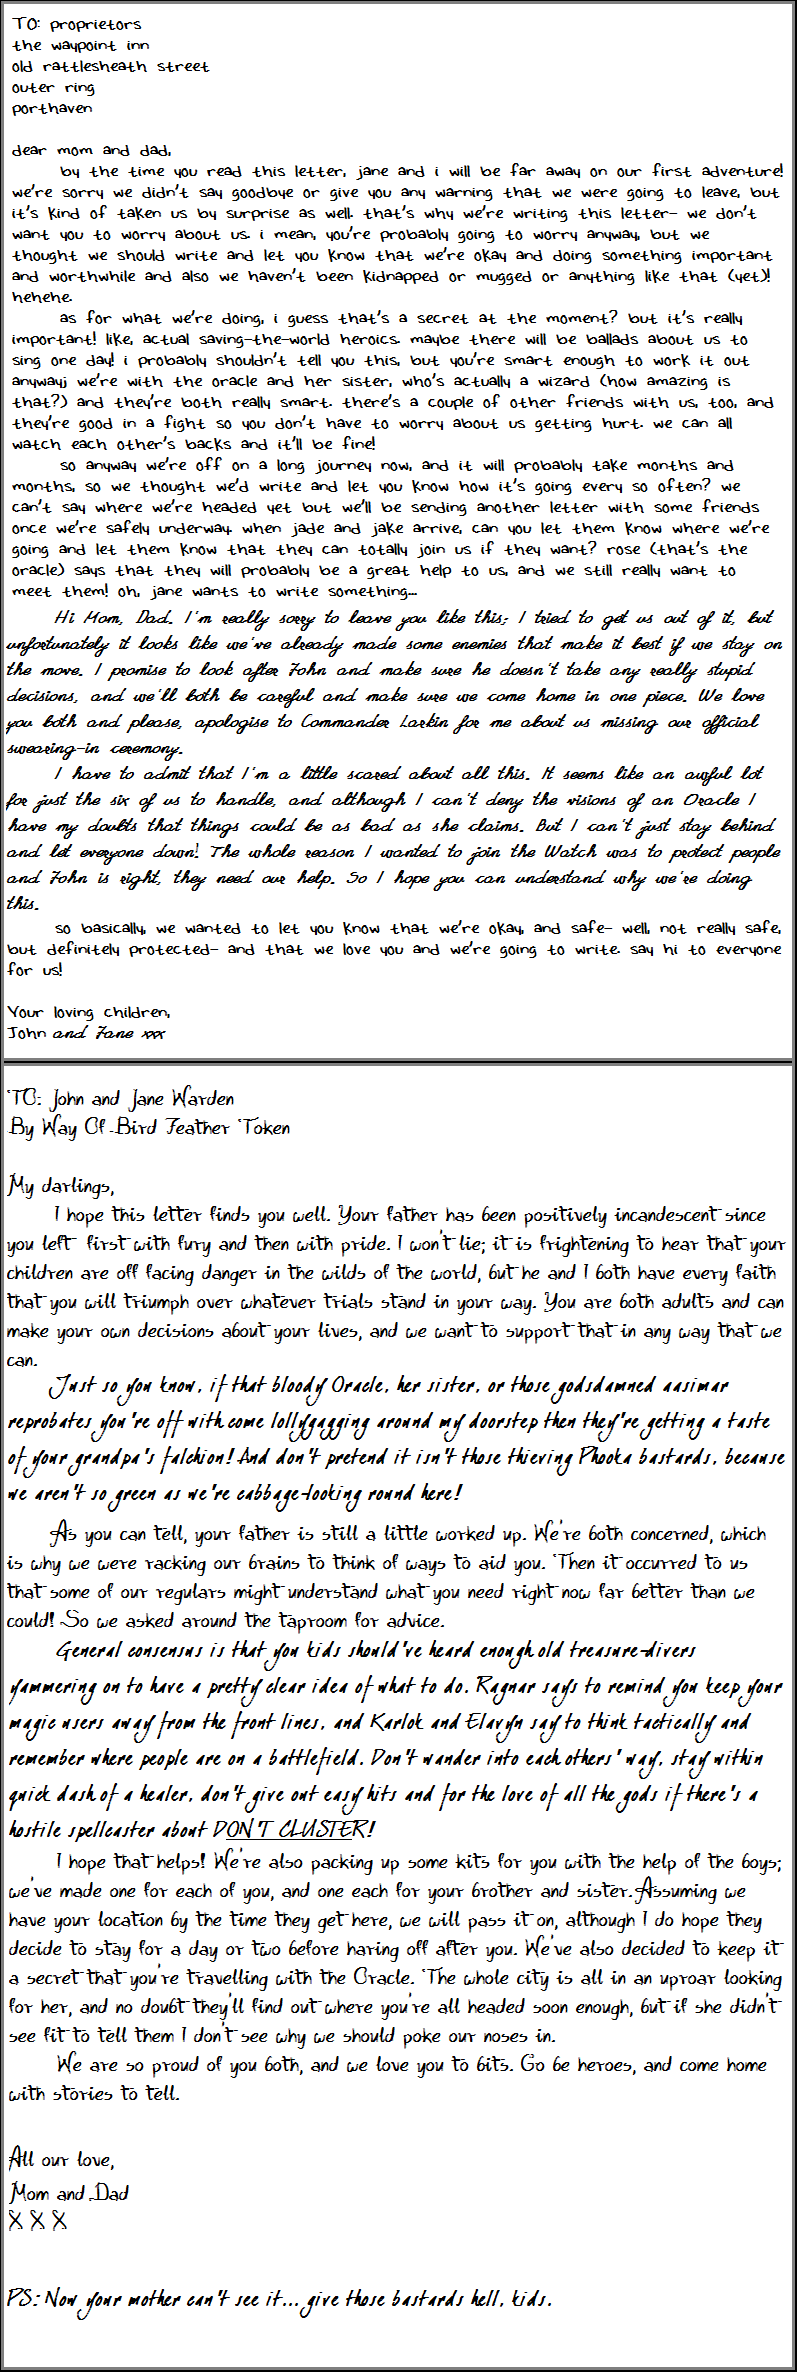 Letter to the Waypoint Inn 01, For attachment to LODAD fic on AO3.